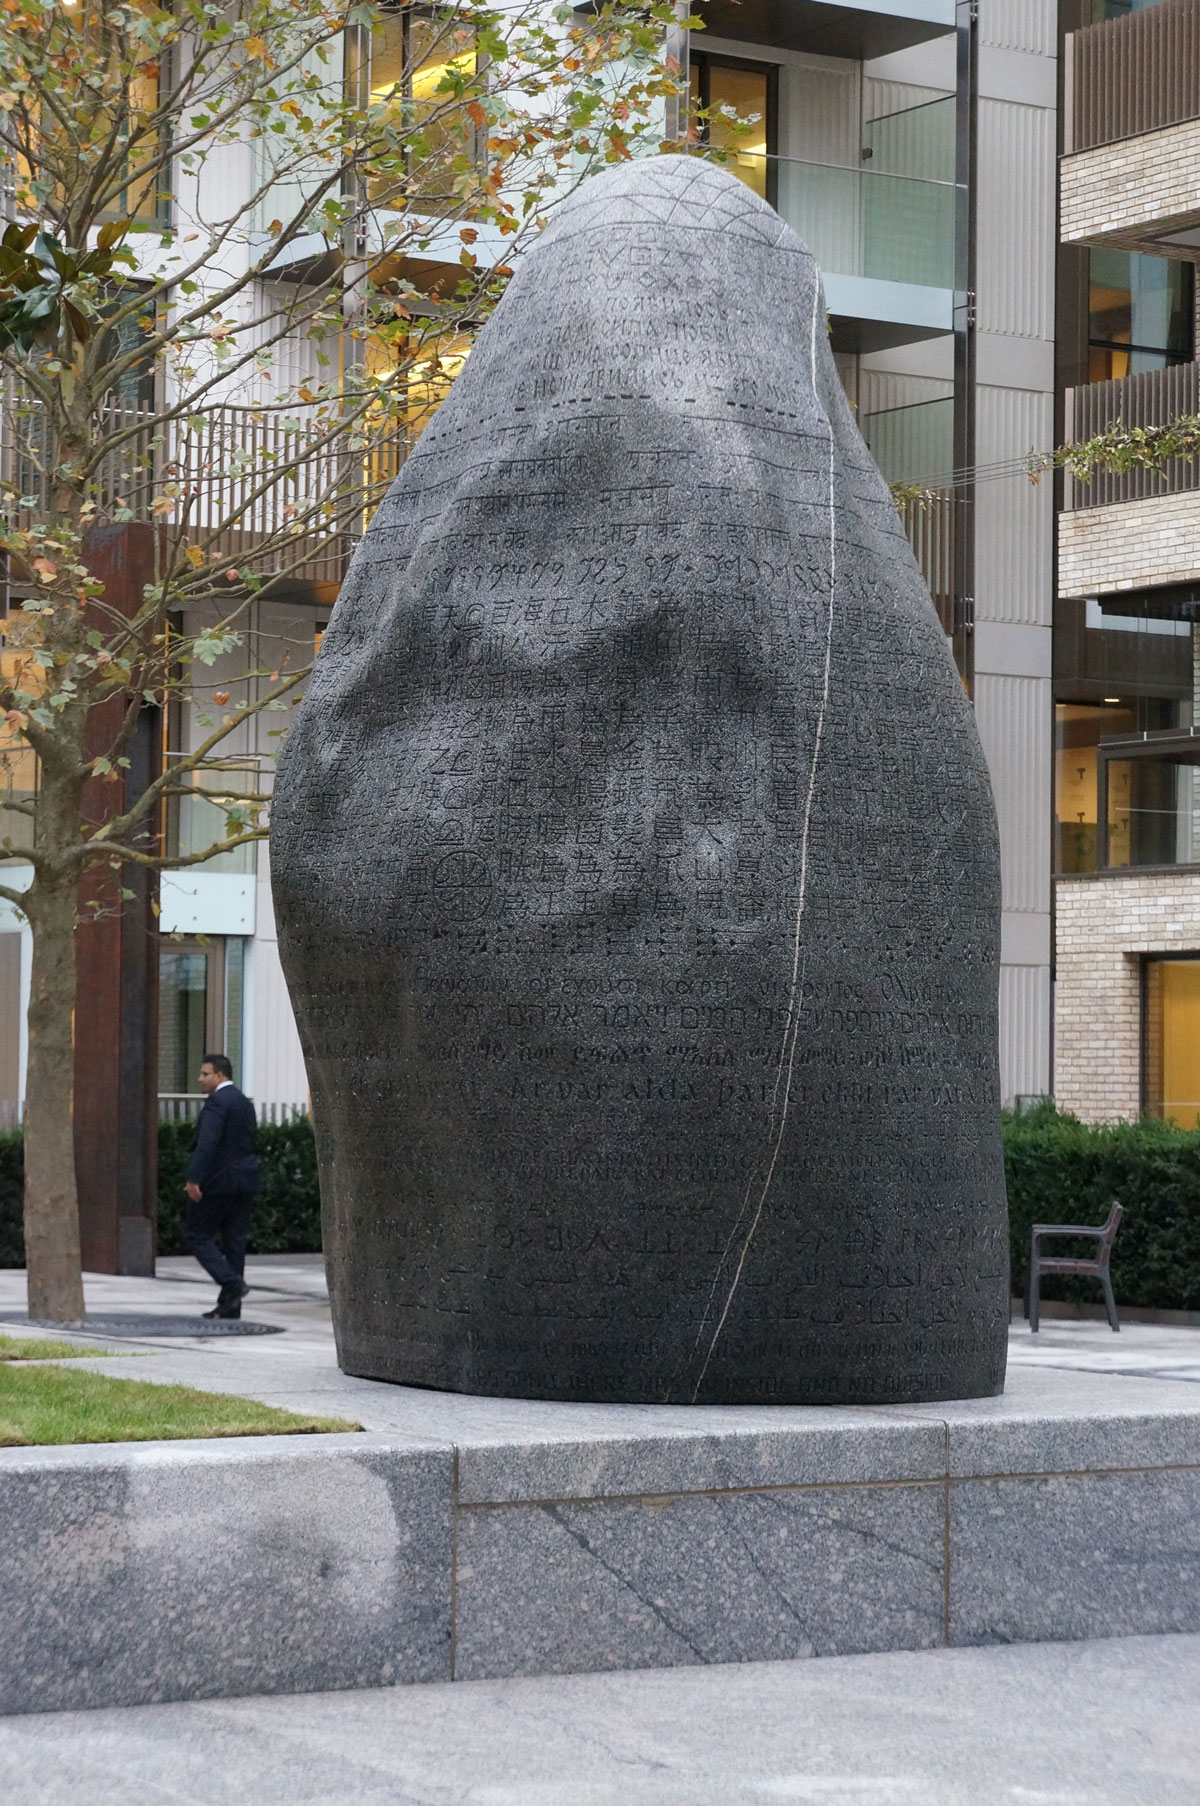 'The One and The Many', 2015, Peter Randall-Page, Situated at Fitzroy Place, London. Photograph by Thomas Randall-Page